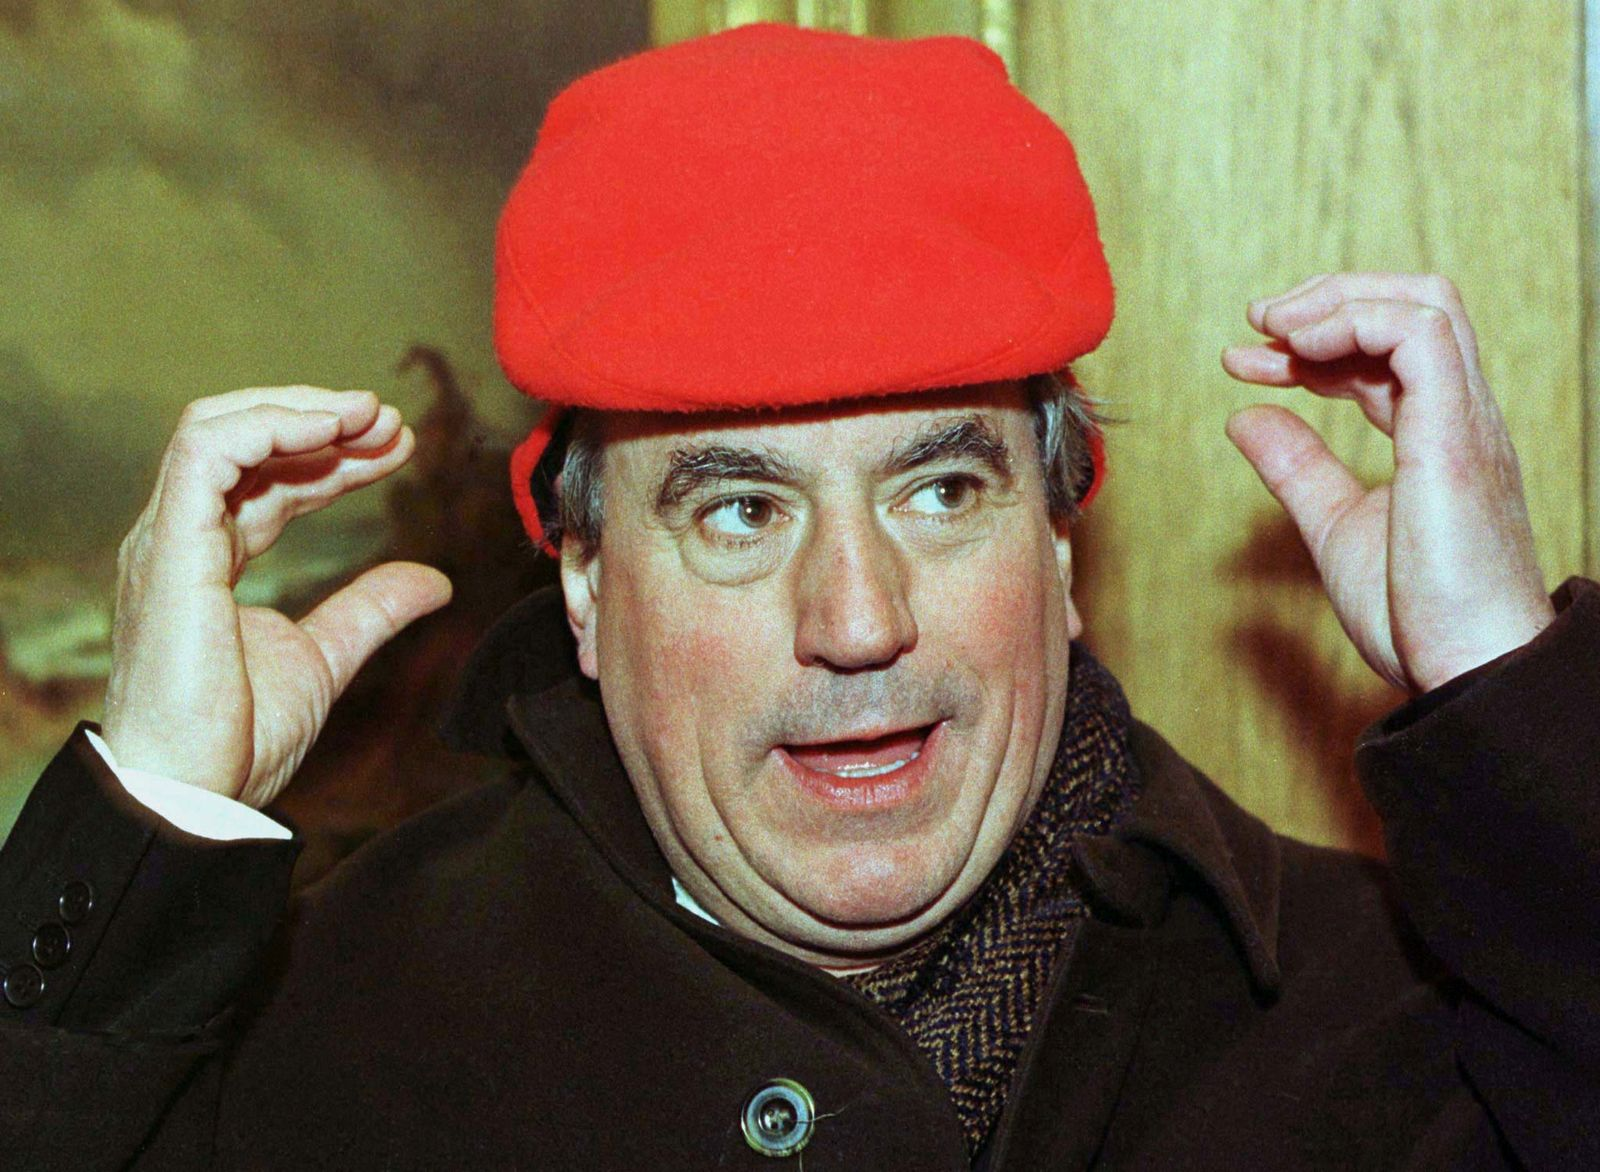 FILE PHOTO: Terry Jones, one of the original Monty Python British comedy troupe members